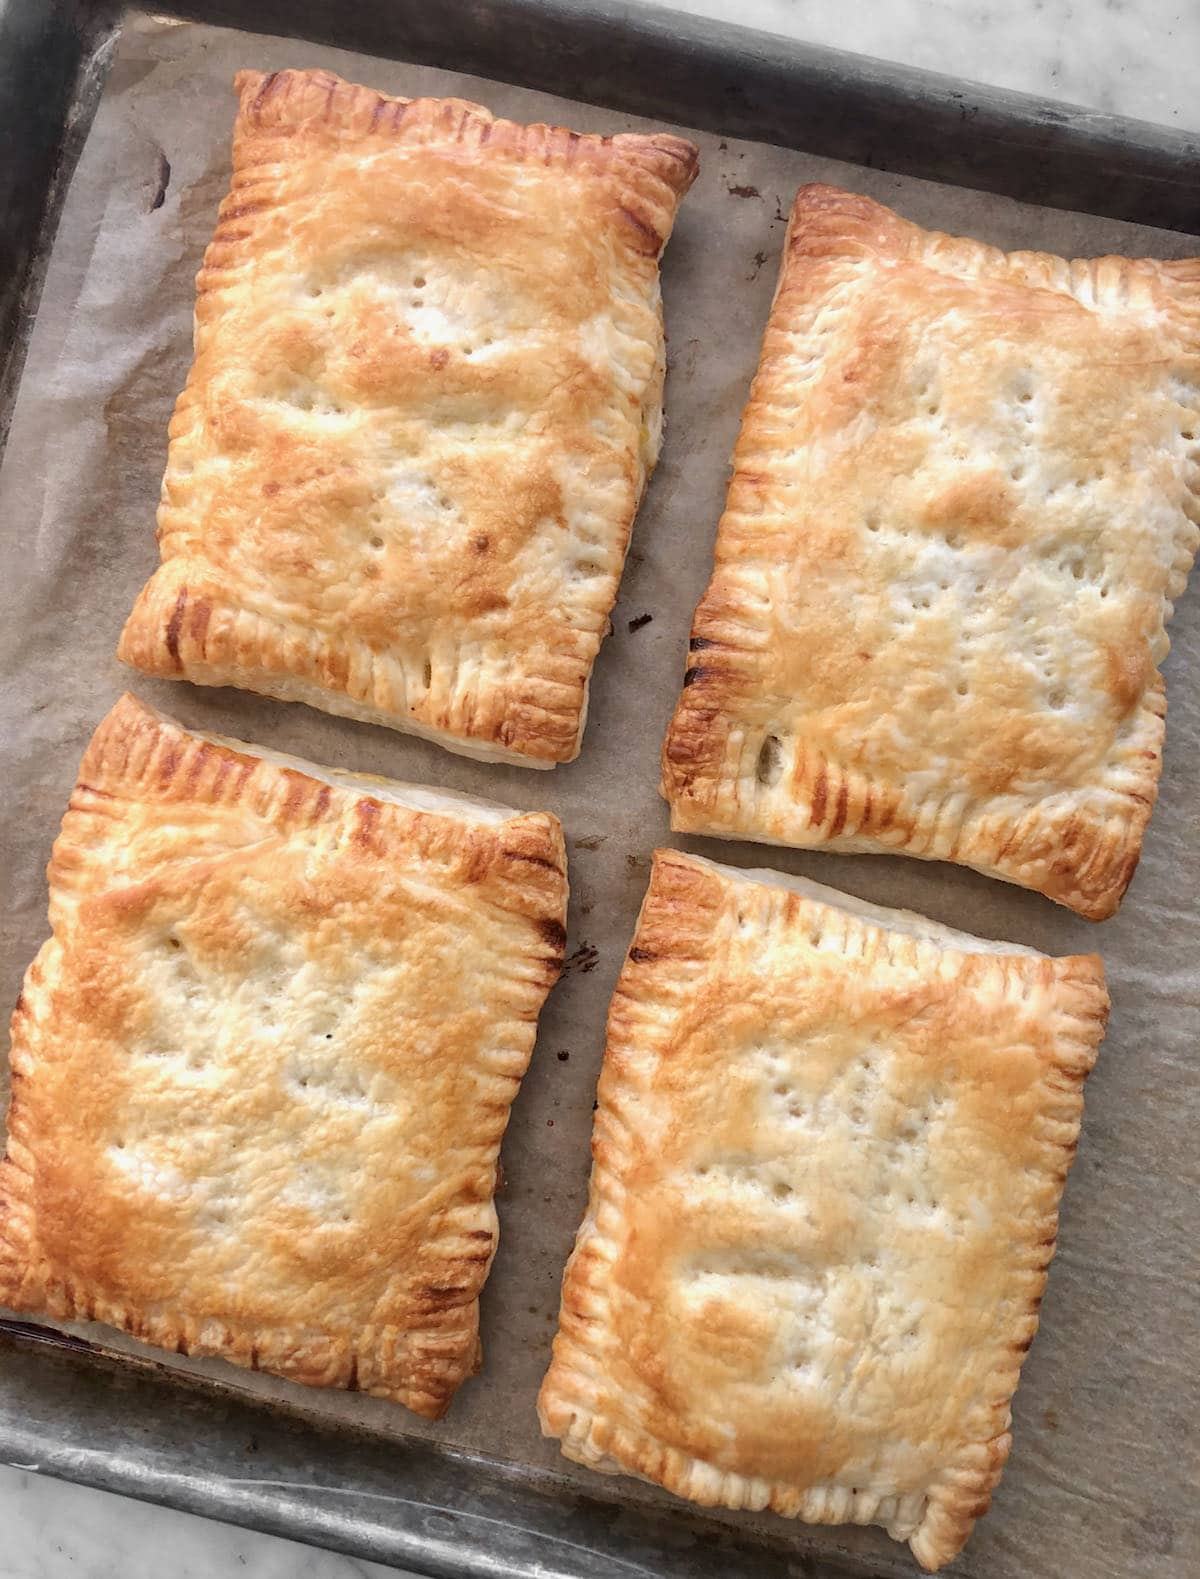 hand pies after being baked on a sheet pan.